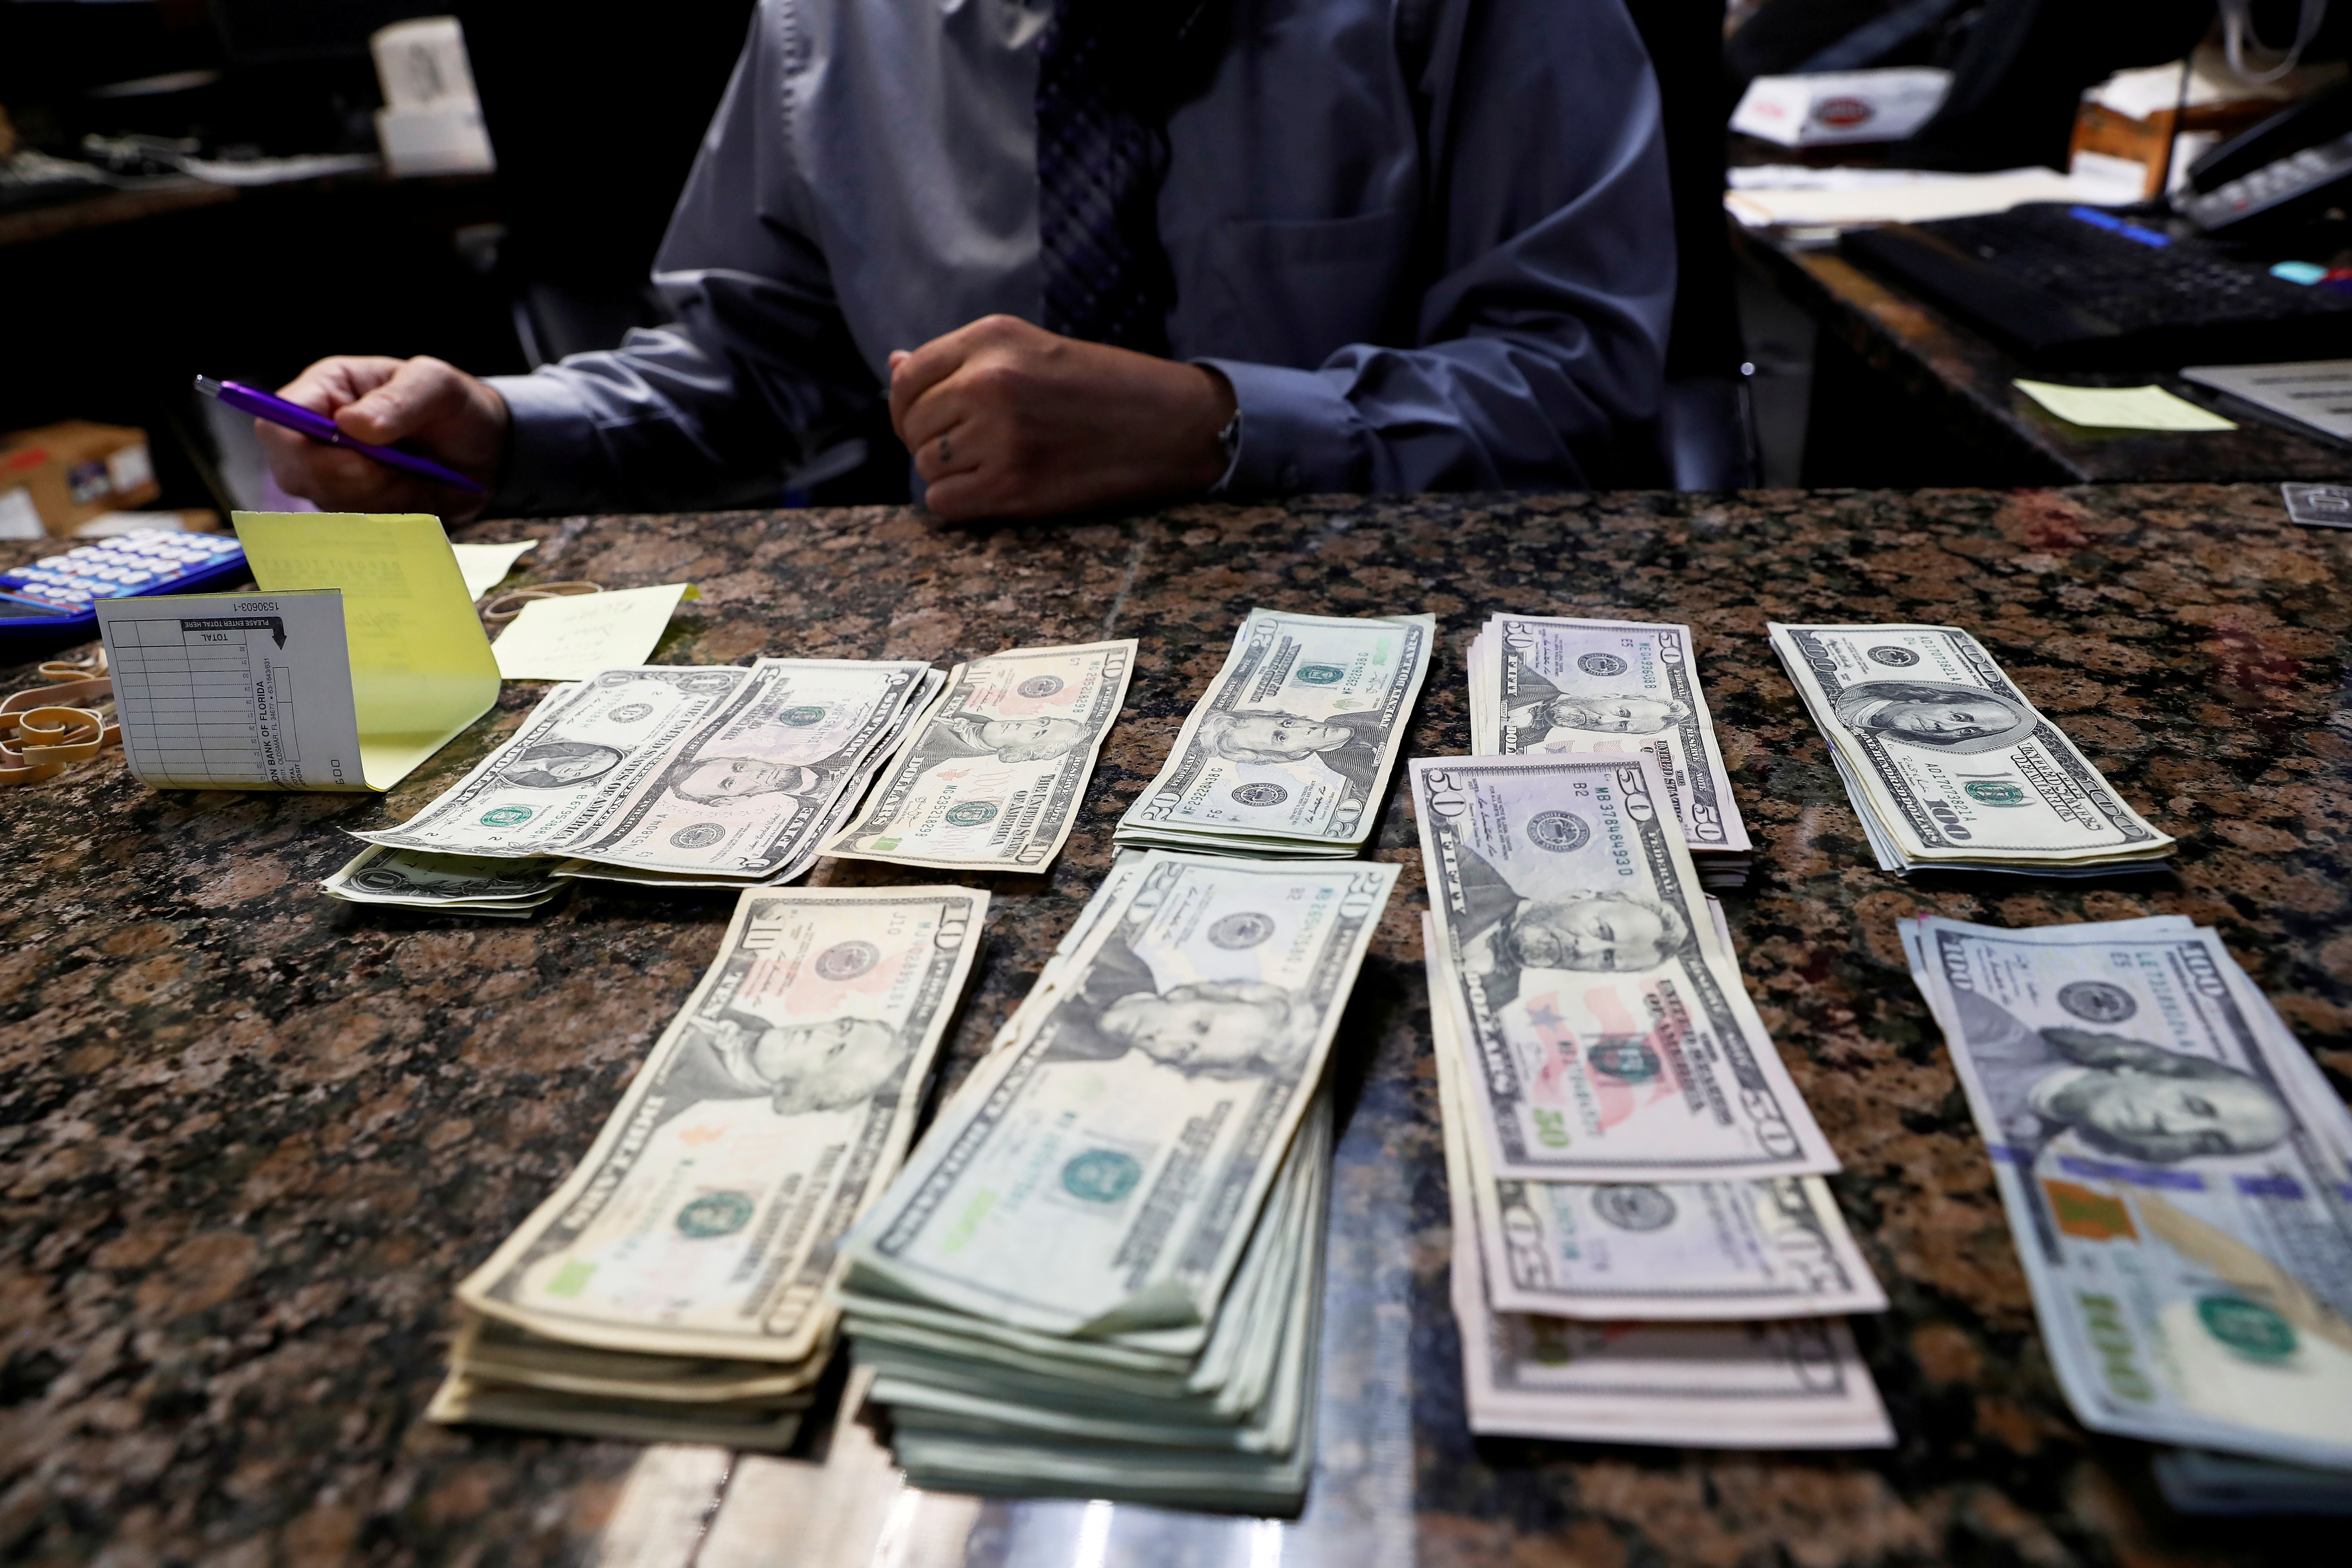 Carlos Gonzalez, managing partner of the Oz Ladies' and Gentlemen's Nightclub, counts money ahead of the Tampa Bay area weekend NFL' Super Bowl LV amid the ongoing spread of the coronavirus disease (COVID-19) at in Clearwater, Florida, February 5, 2021.  REUTERS/Shannon Stapleton/File Photo